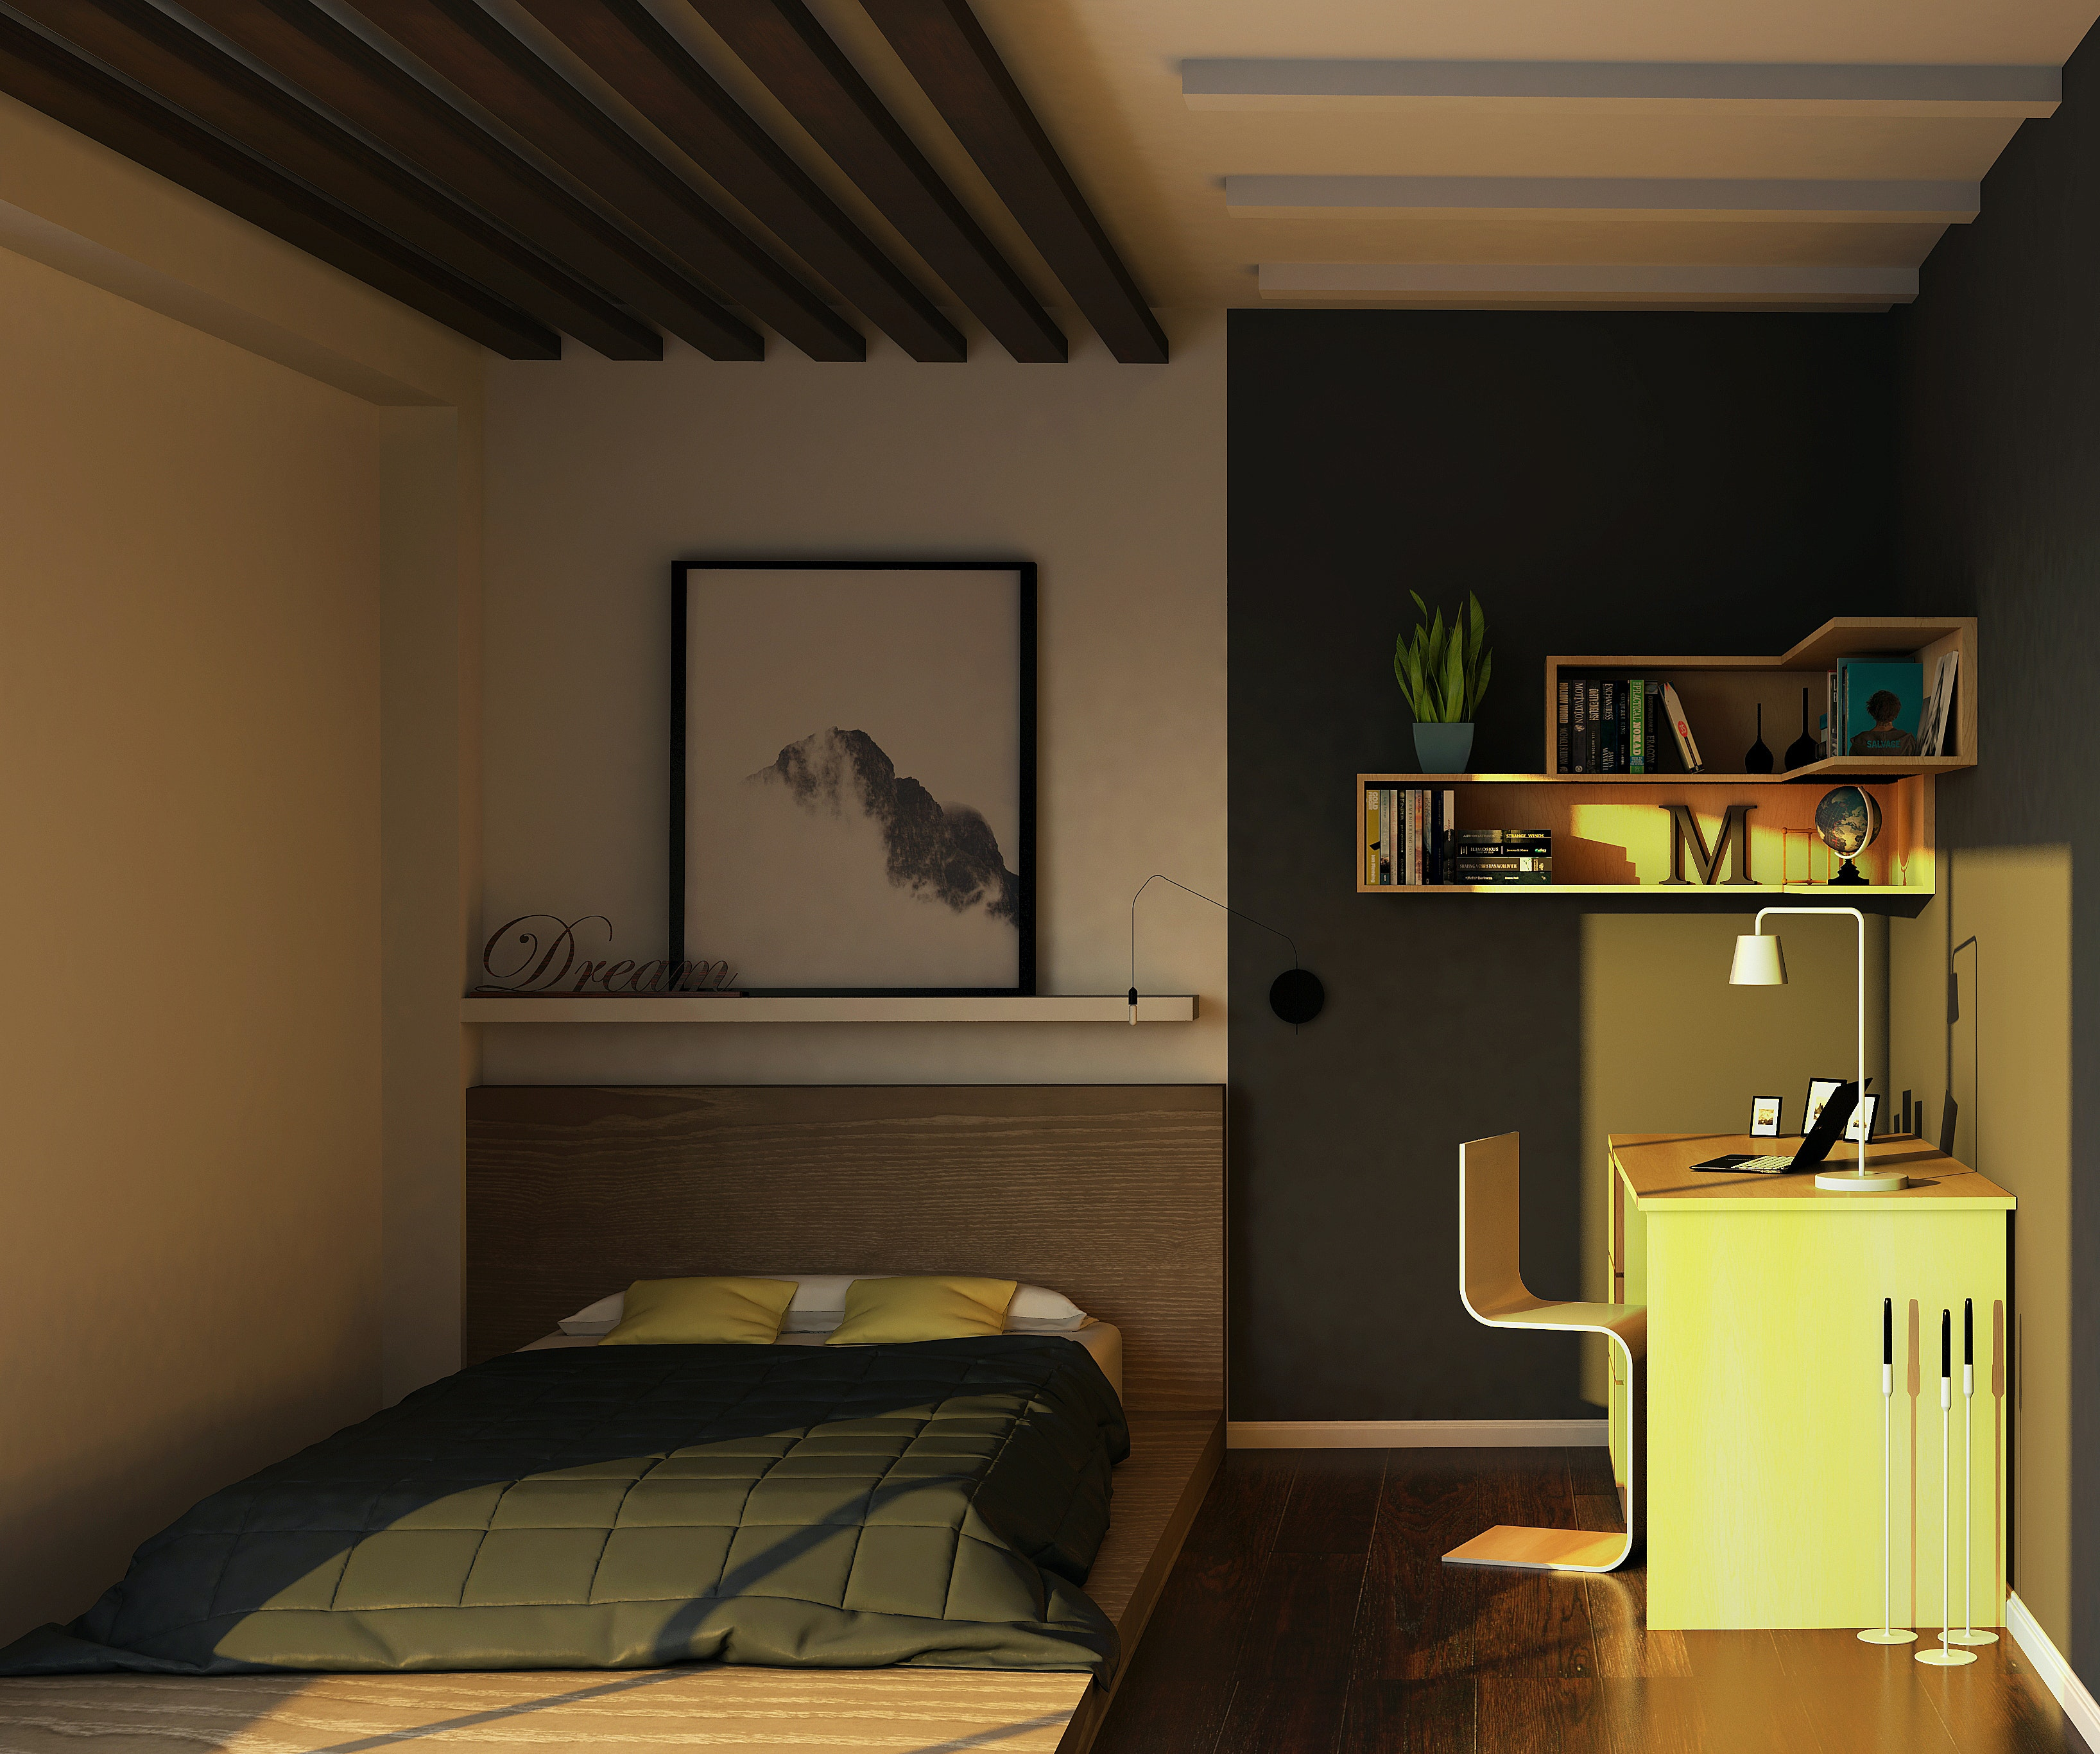 Free stock photo of 3D's Max, architectural design, bed